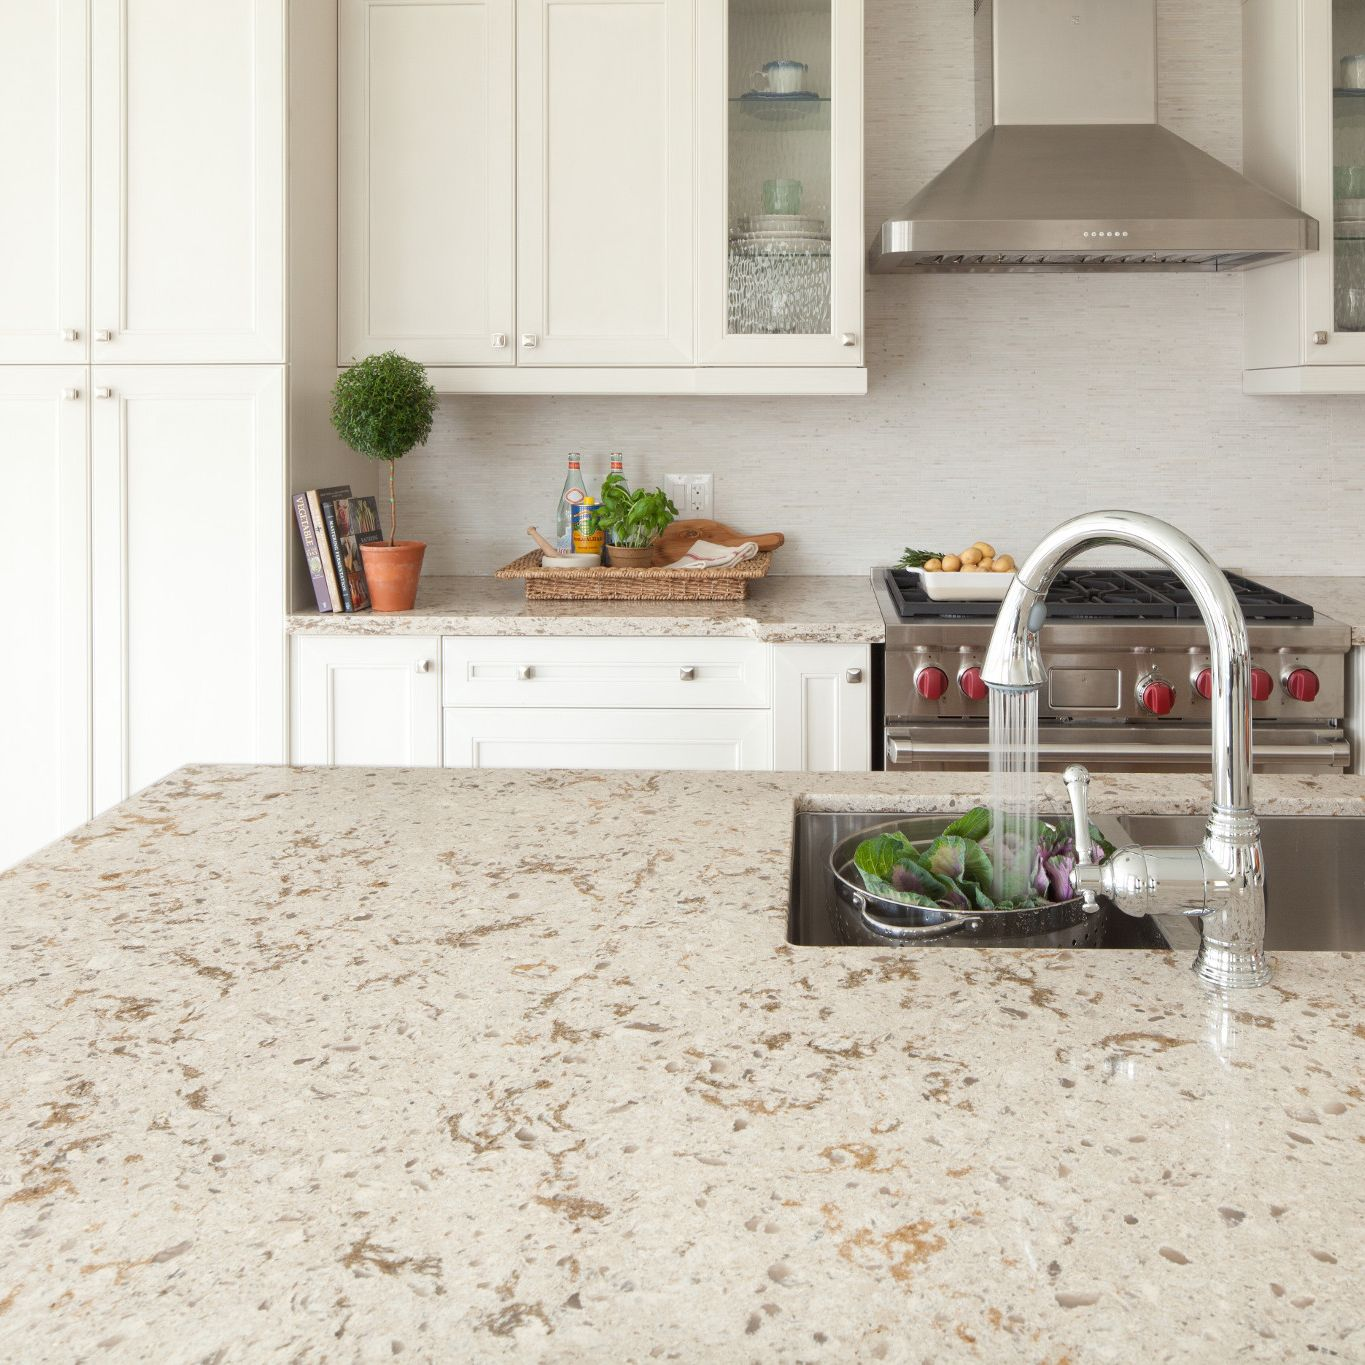 Cambria-Windermere-Quartz-Countertop-Kitchen-sink